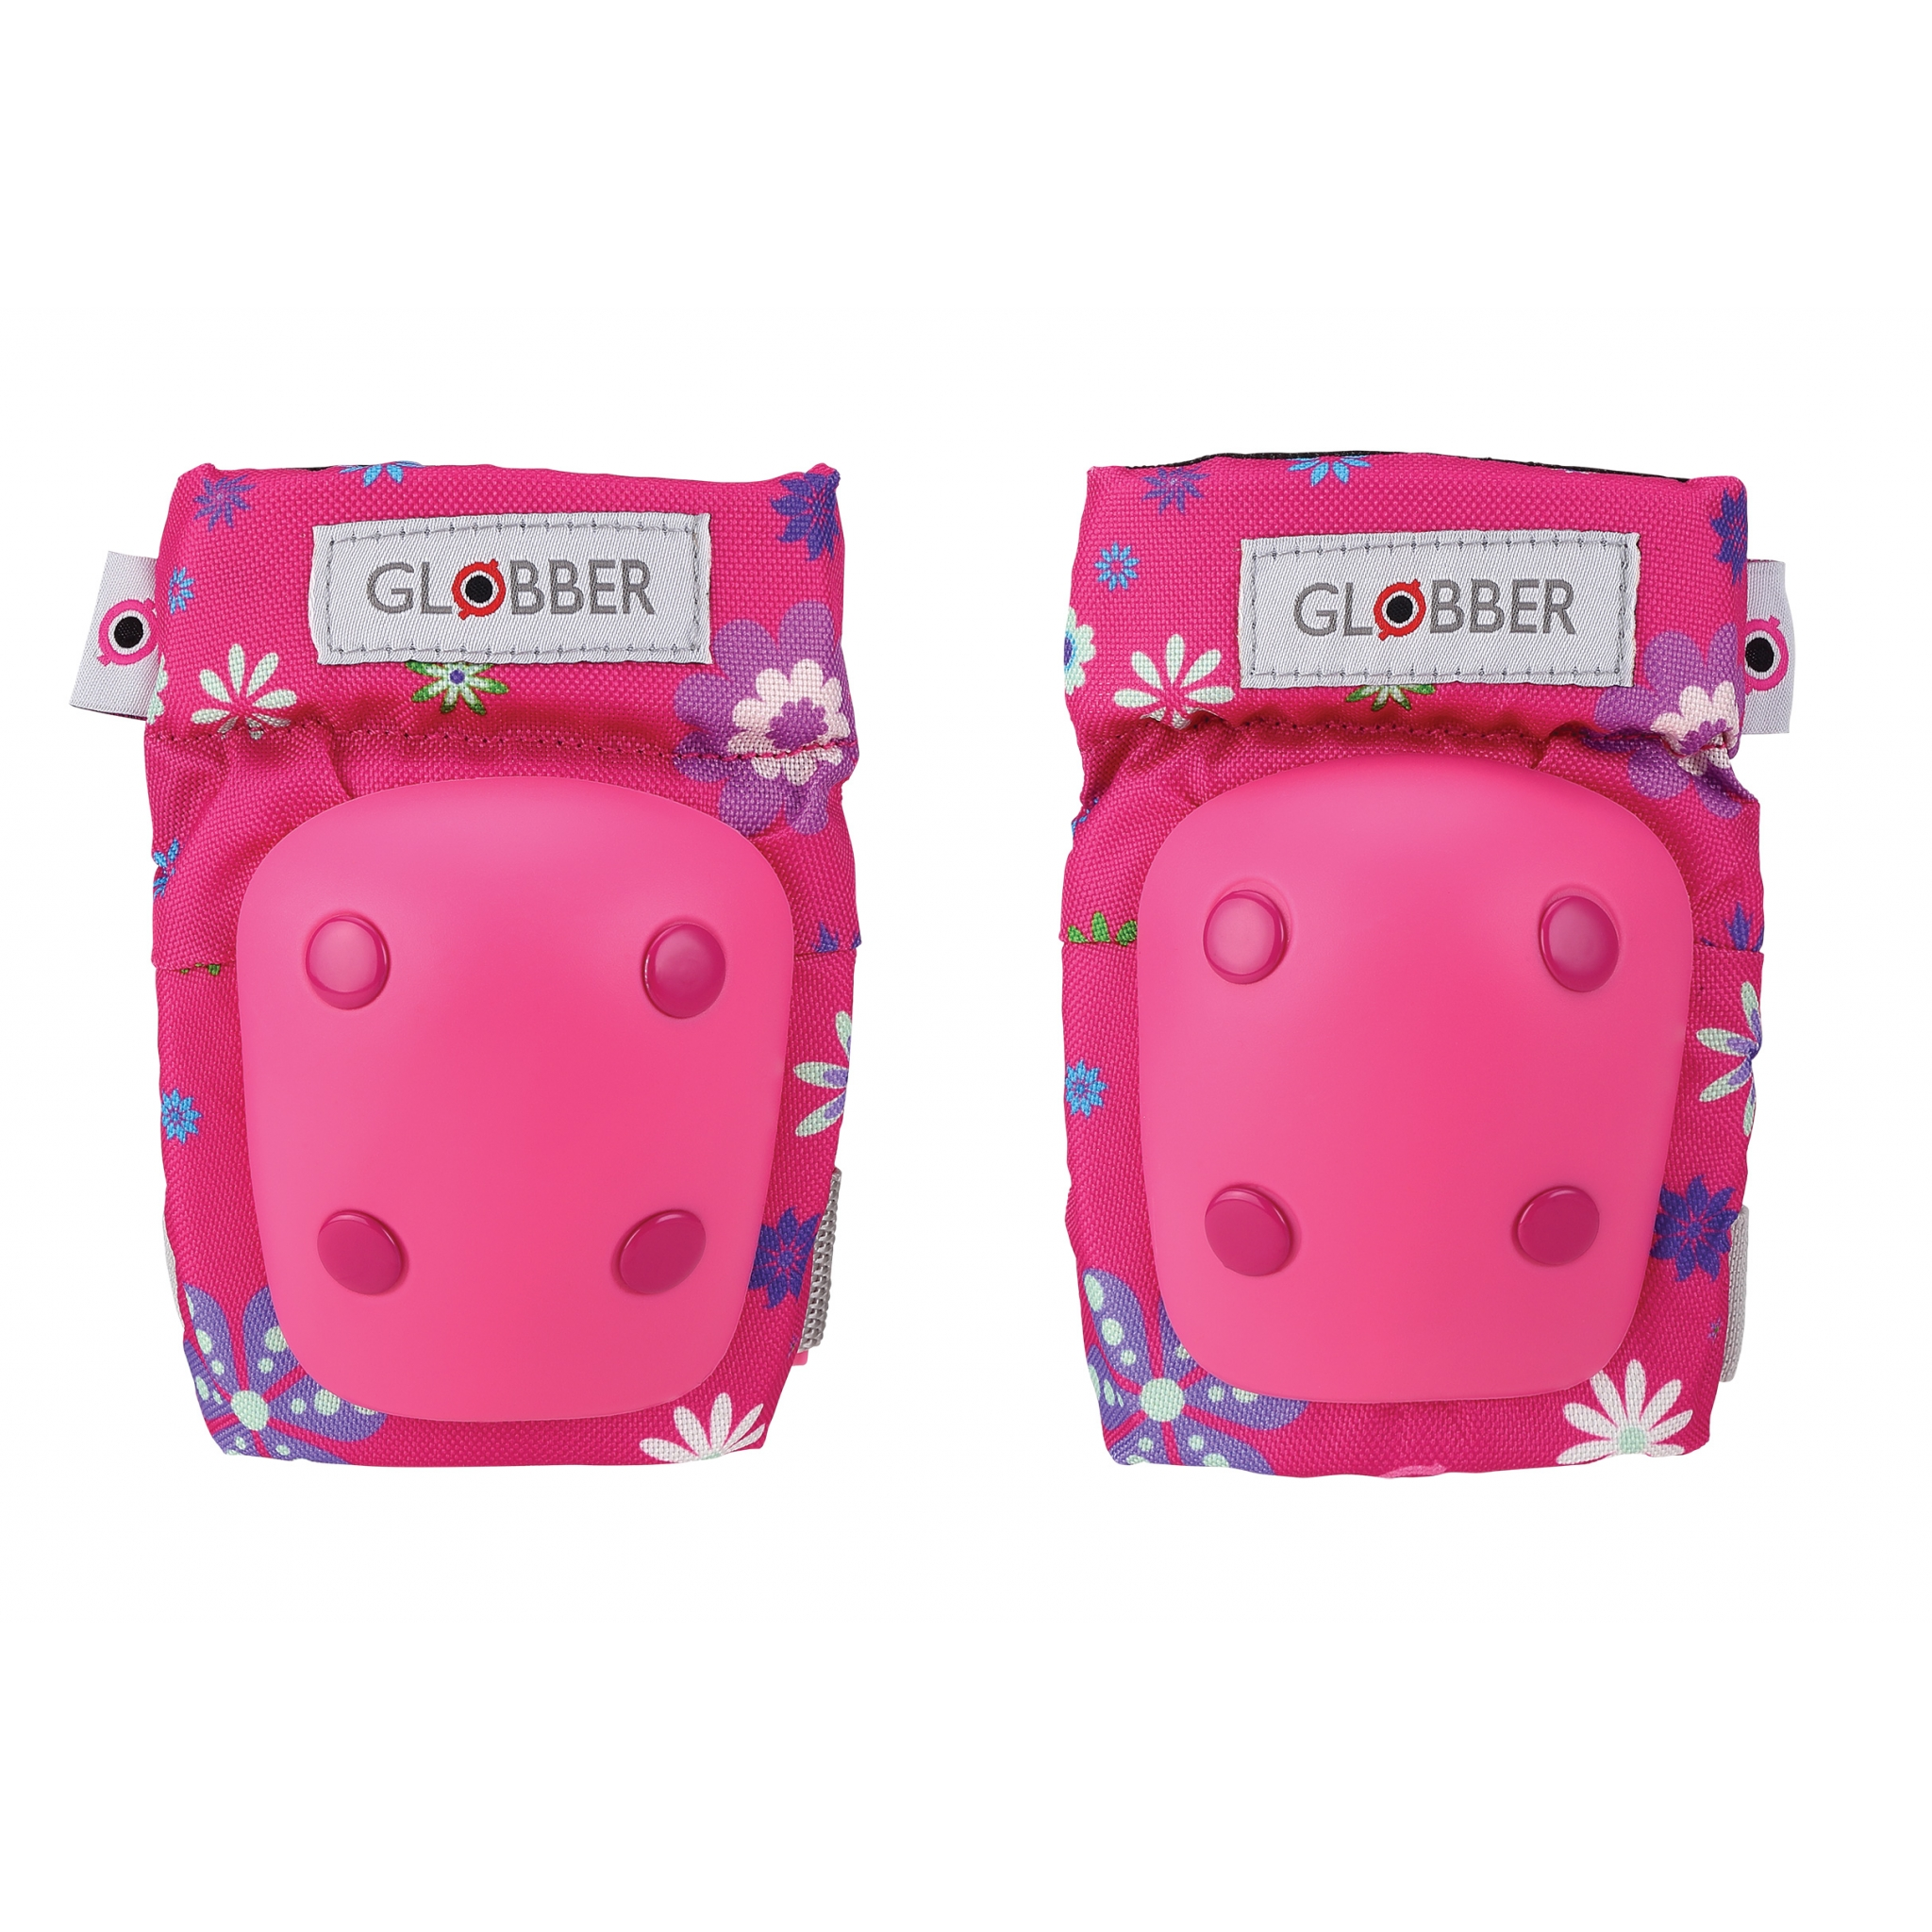 printed protective gear for kids - Globber